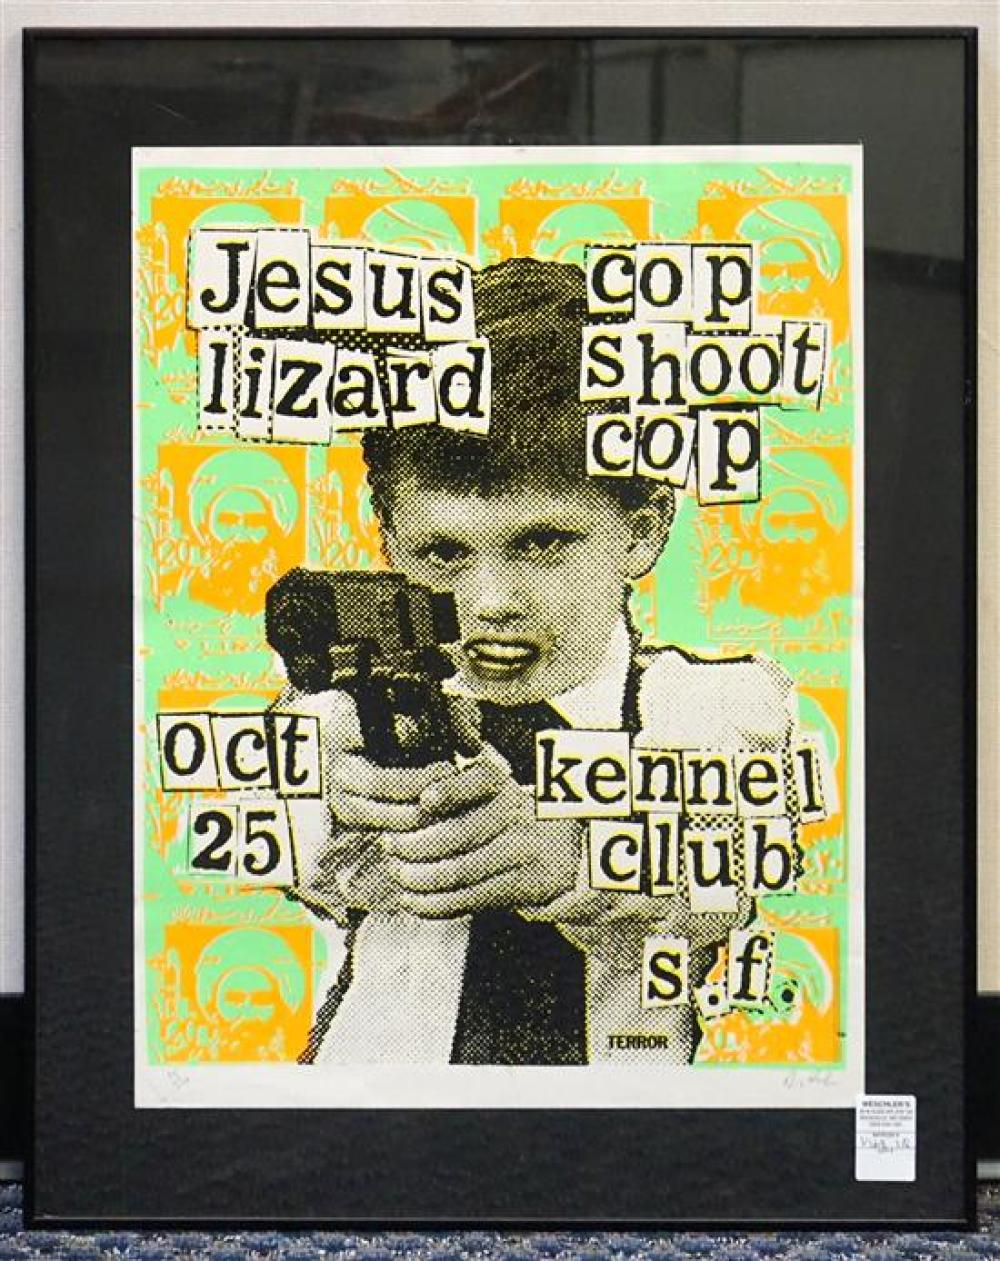 Cop Shoot Cop, Jesus Lizard, Lithographic Poster, Signed l.r., Frame: 28 x 22 in